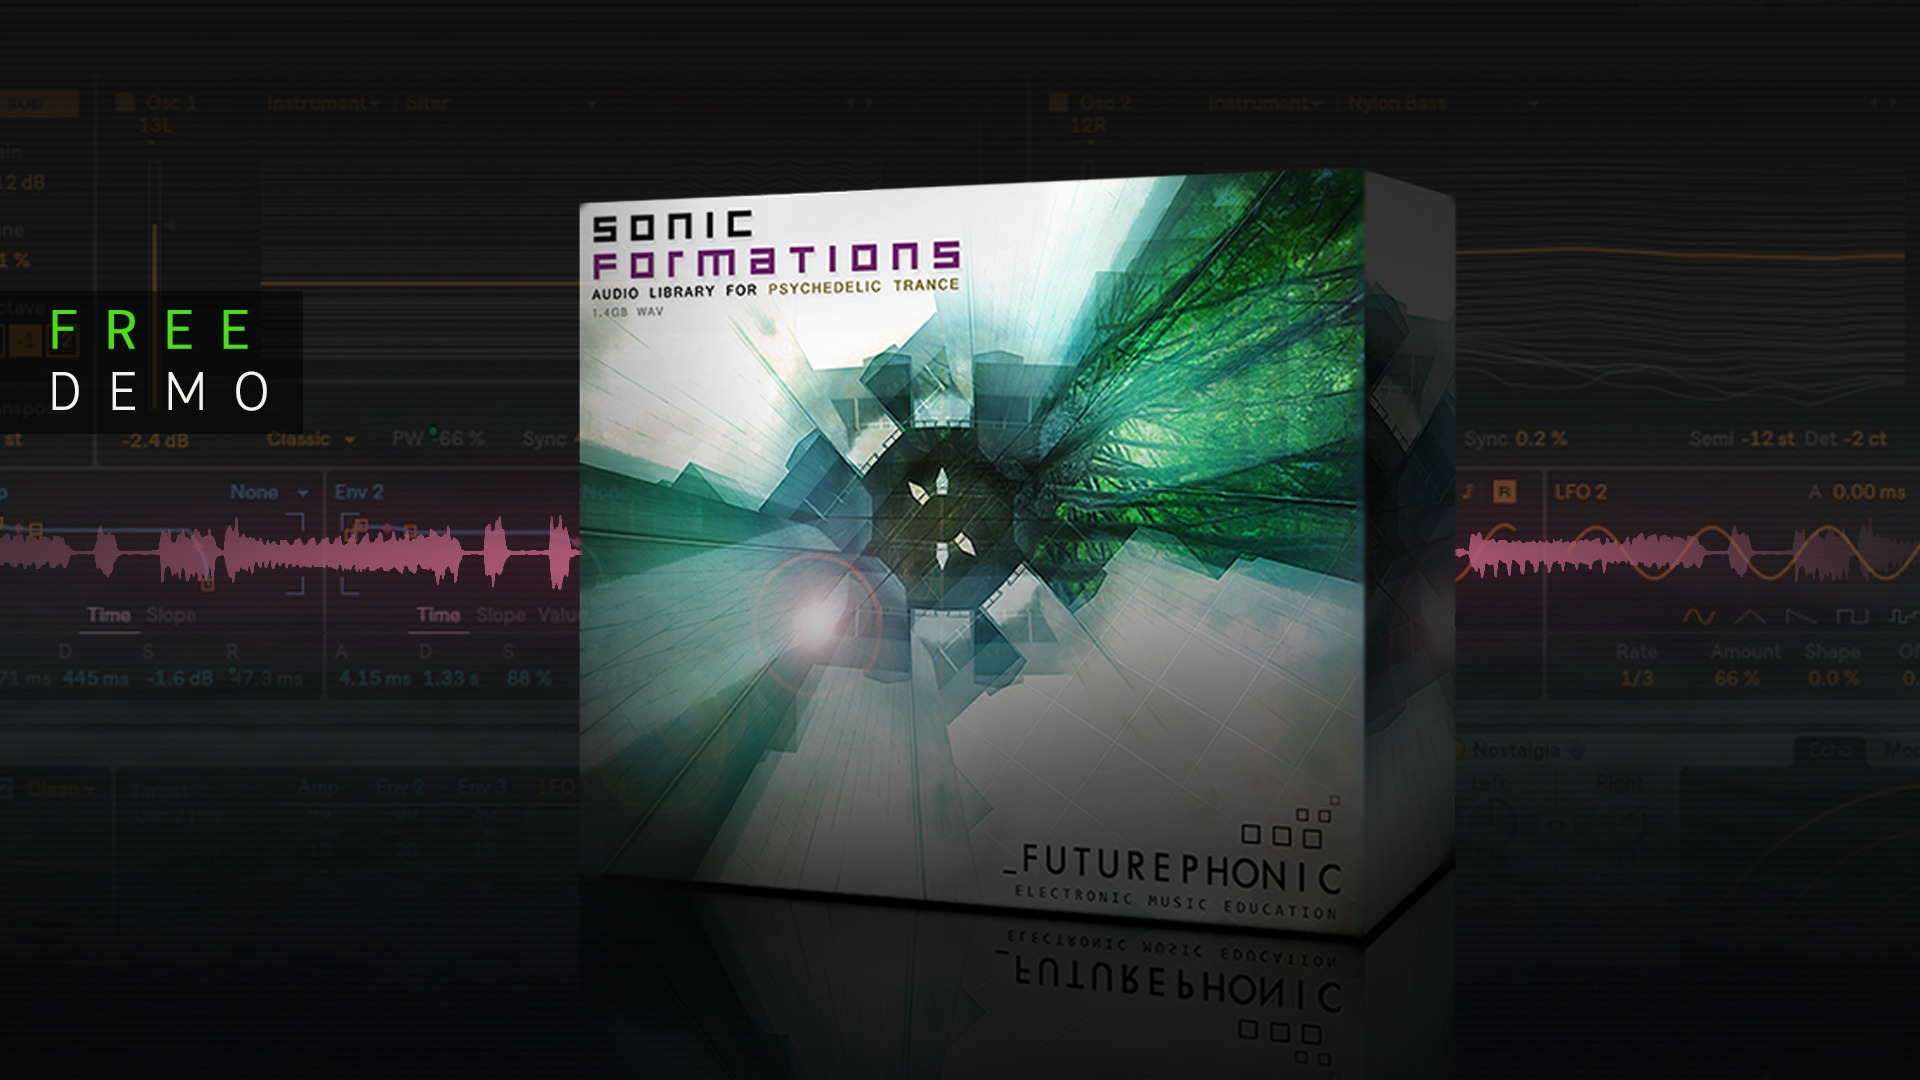 Free 250MB Demo - Sonic Formations